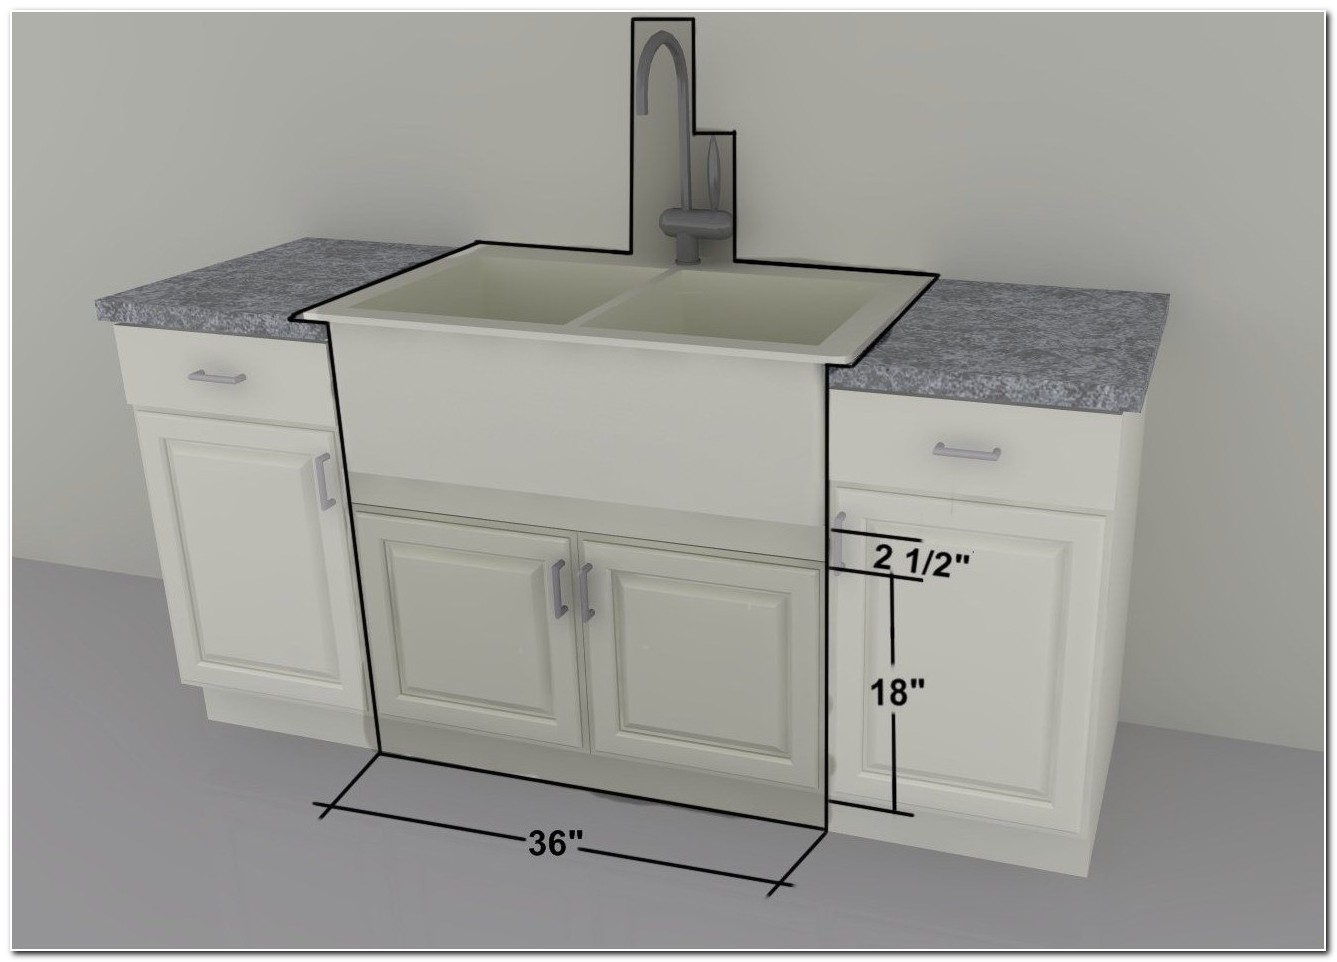 Convert Cabinet For Farmhouse Sink